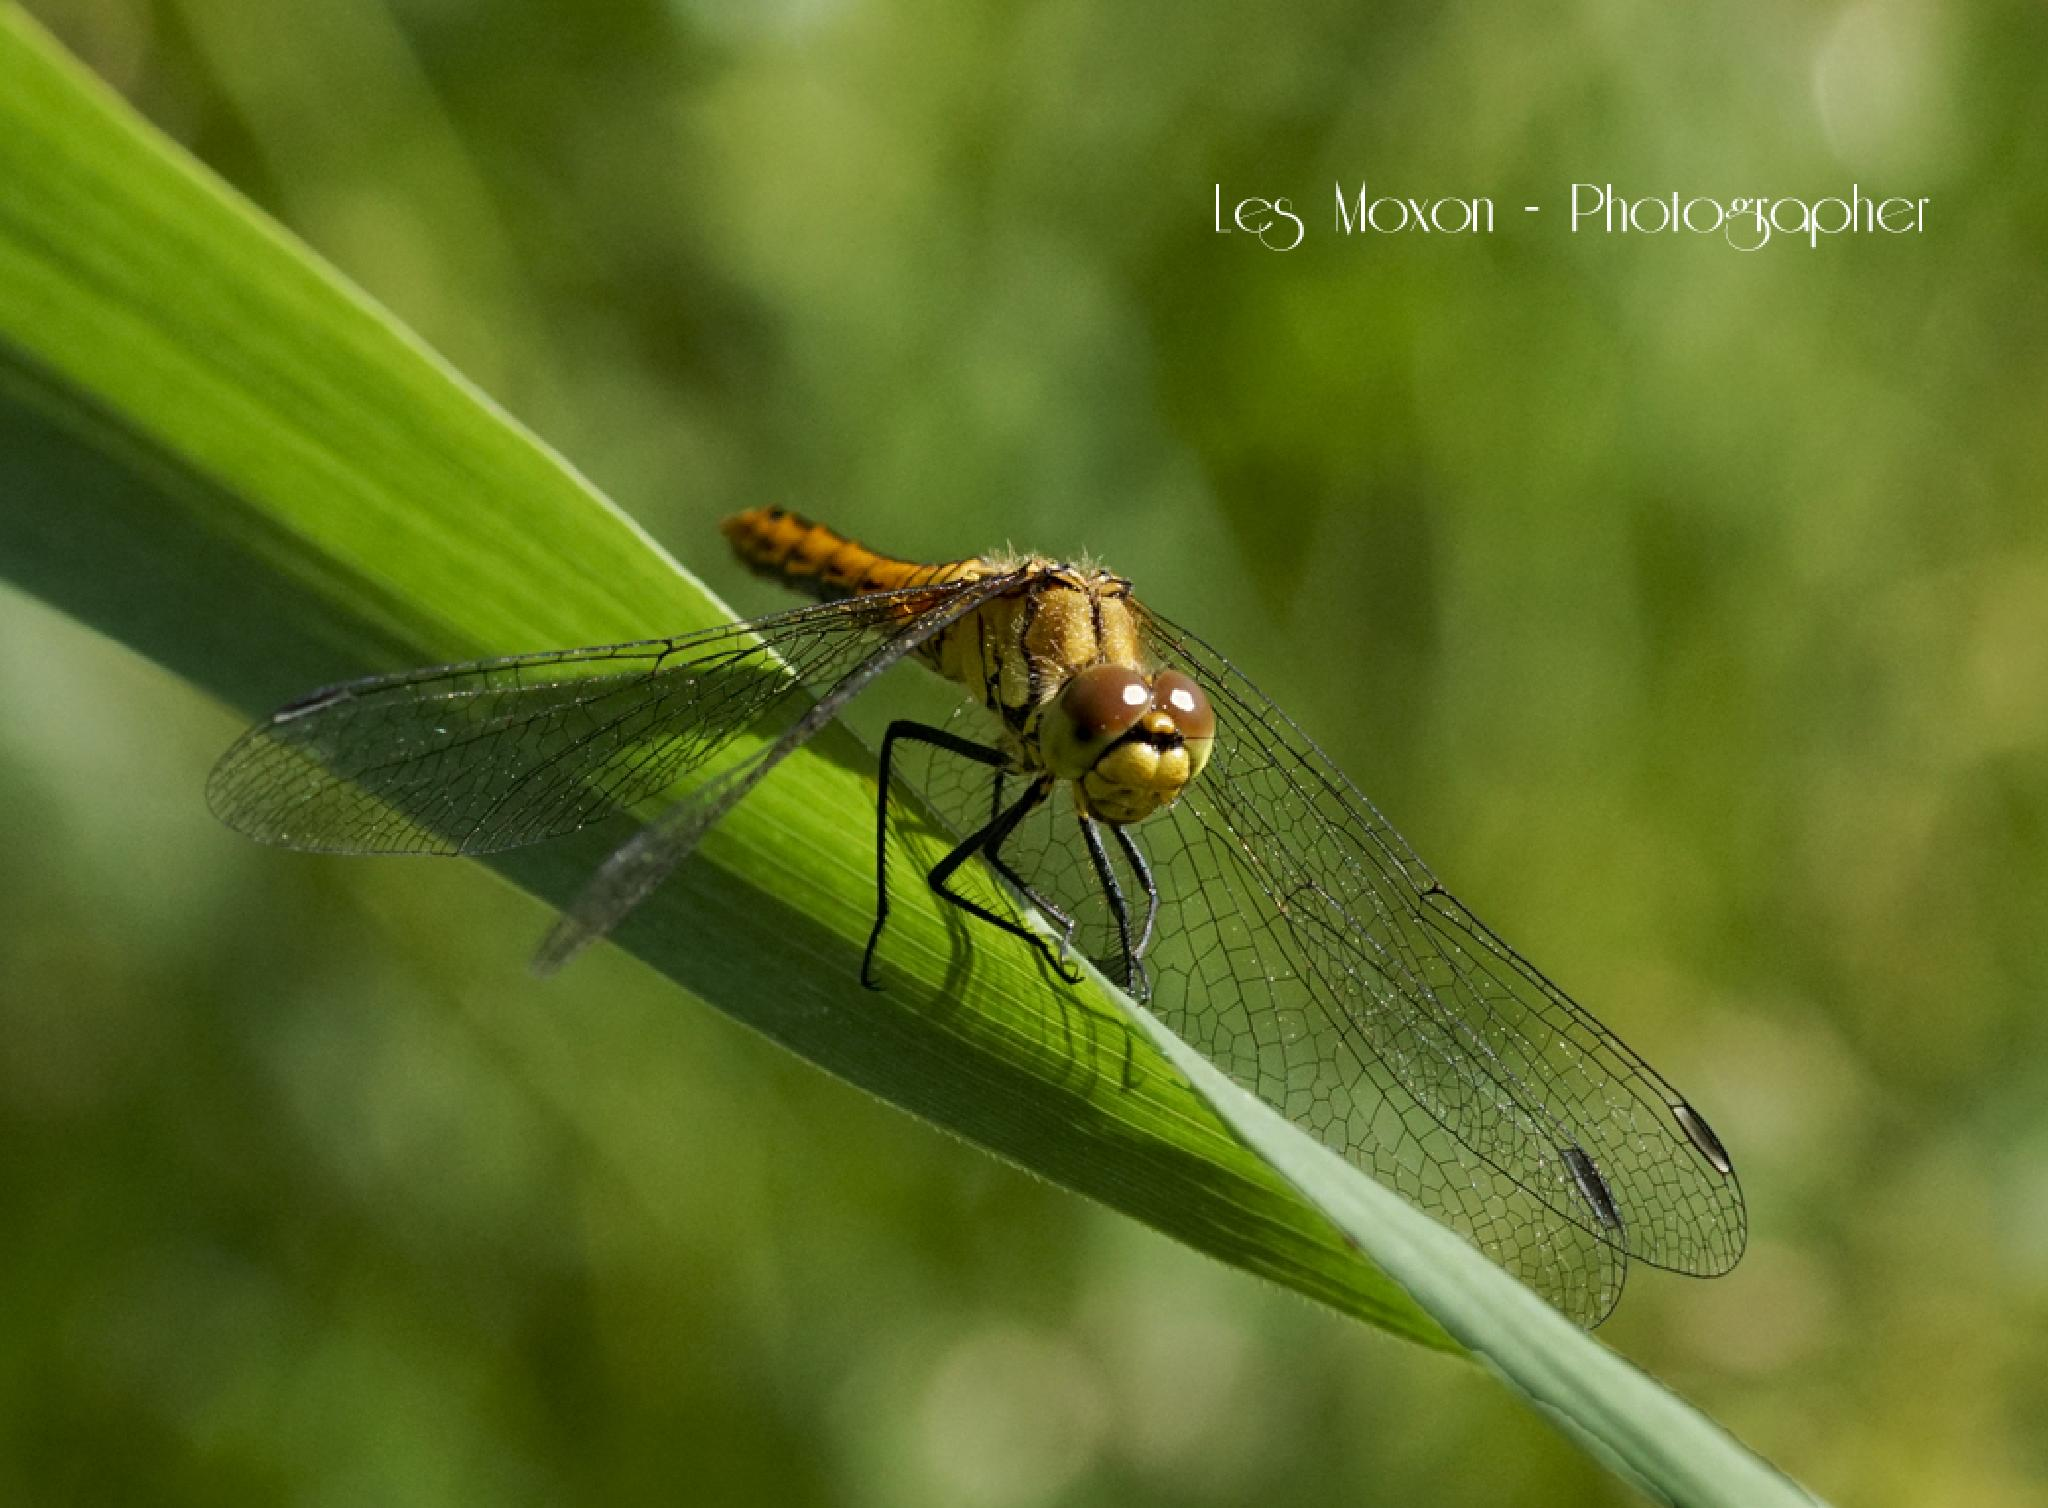 Dragonfly by Les Moxon Photography